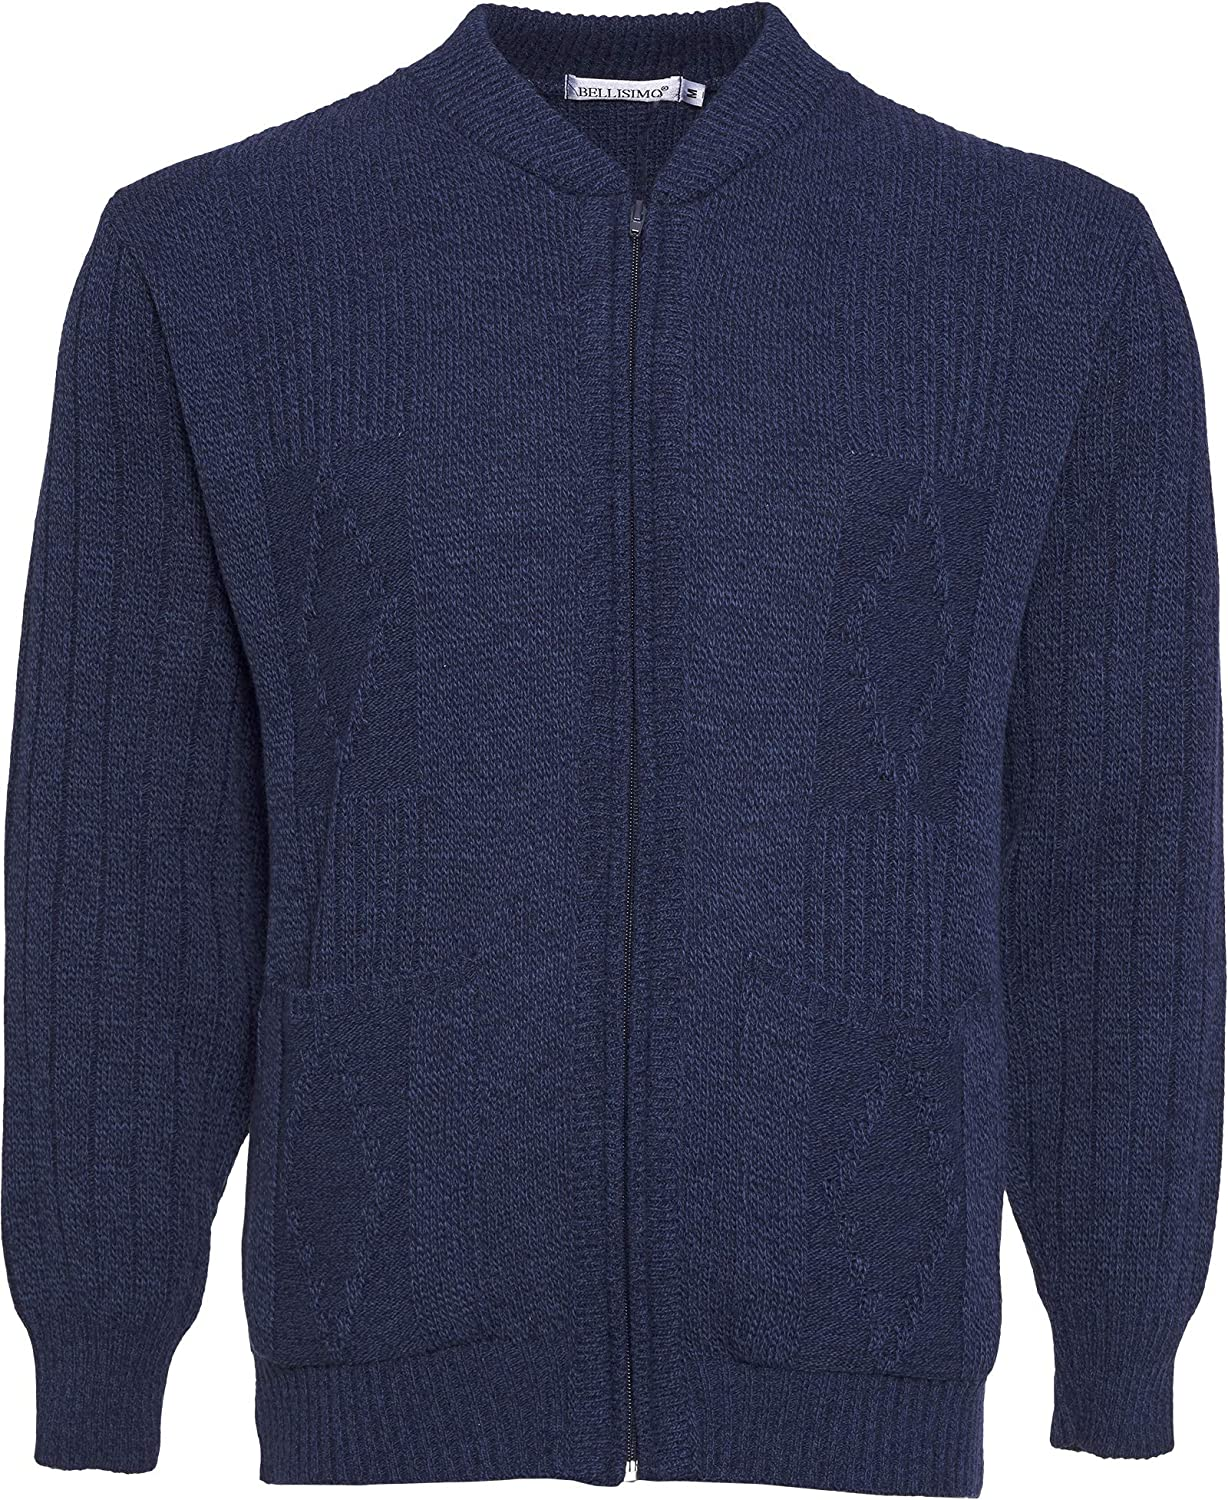 Mens Knitted Cardigan Classic Style Cardigans V Neck Zipper Jumper Plain Coloured